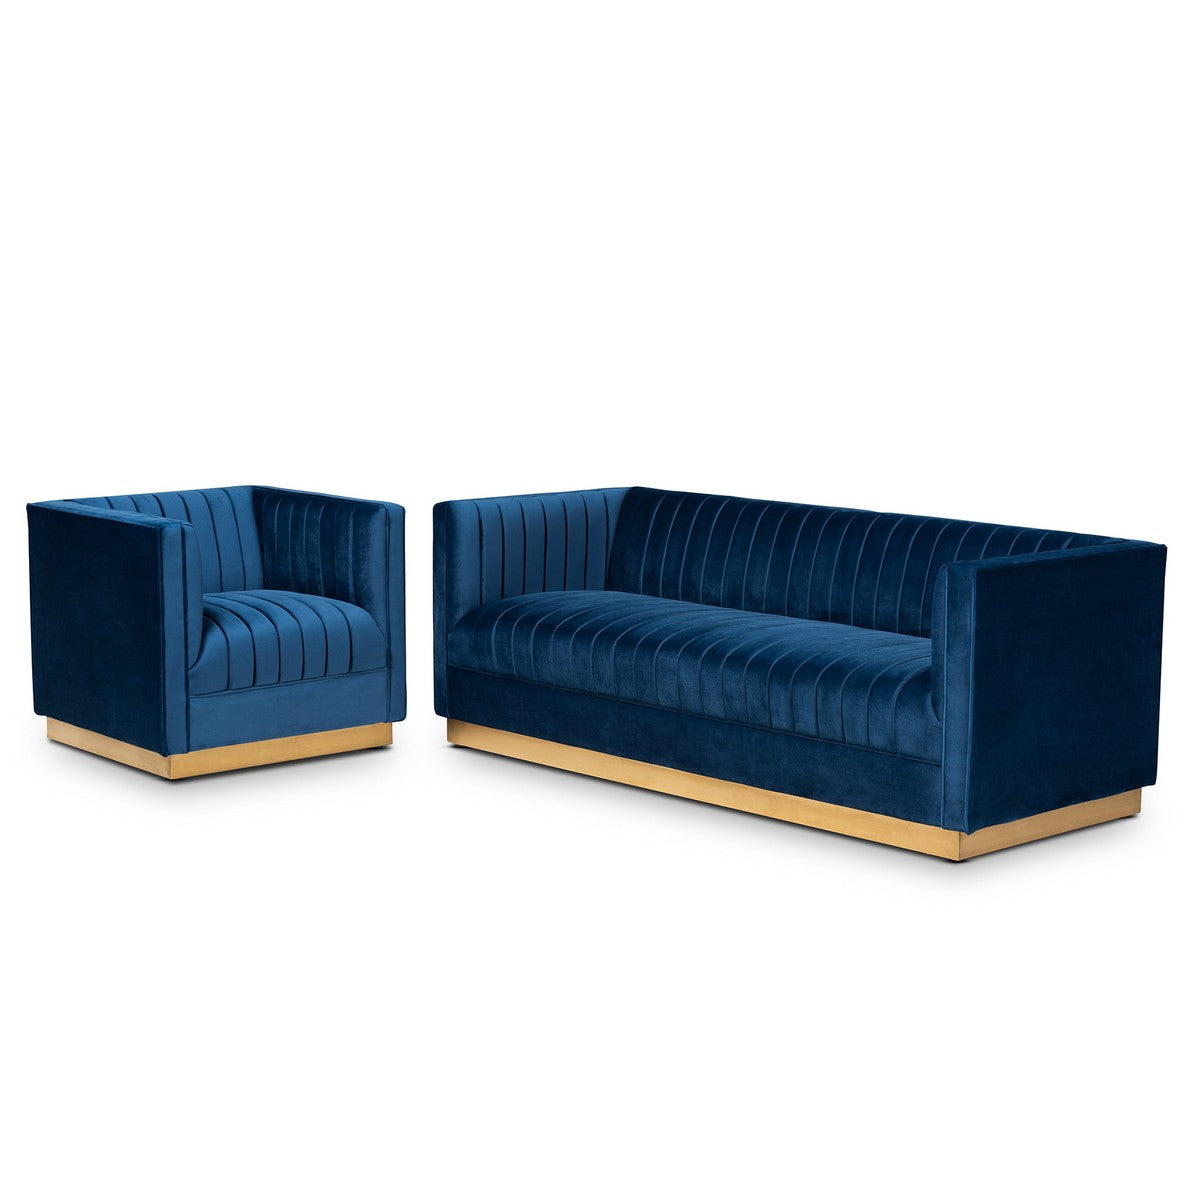 Baxton Studio Aveline Glam and Luxe Navy Blue Velvet Fabric Upholstered Brushed Gold Finished 2-Piece Living Room Set Baxton Studio-Living Room Sets-Minimal And Modern - 1